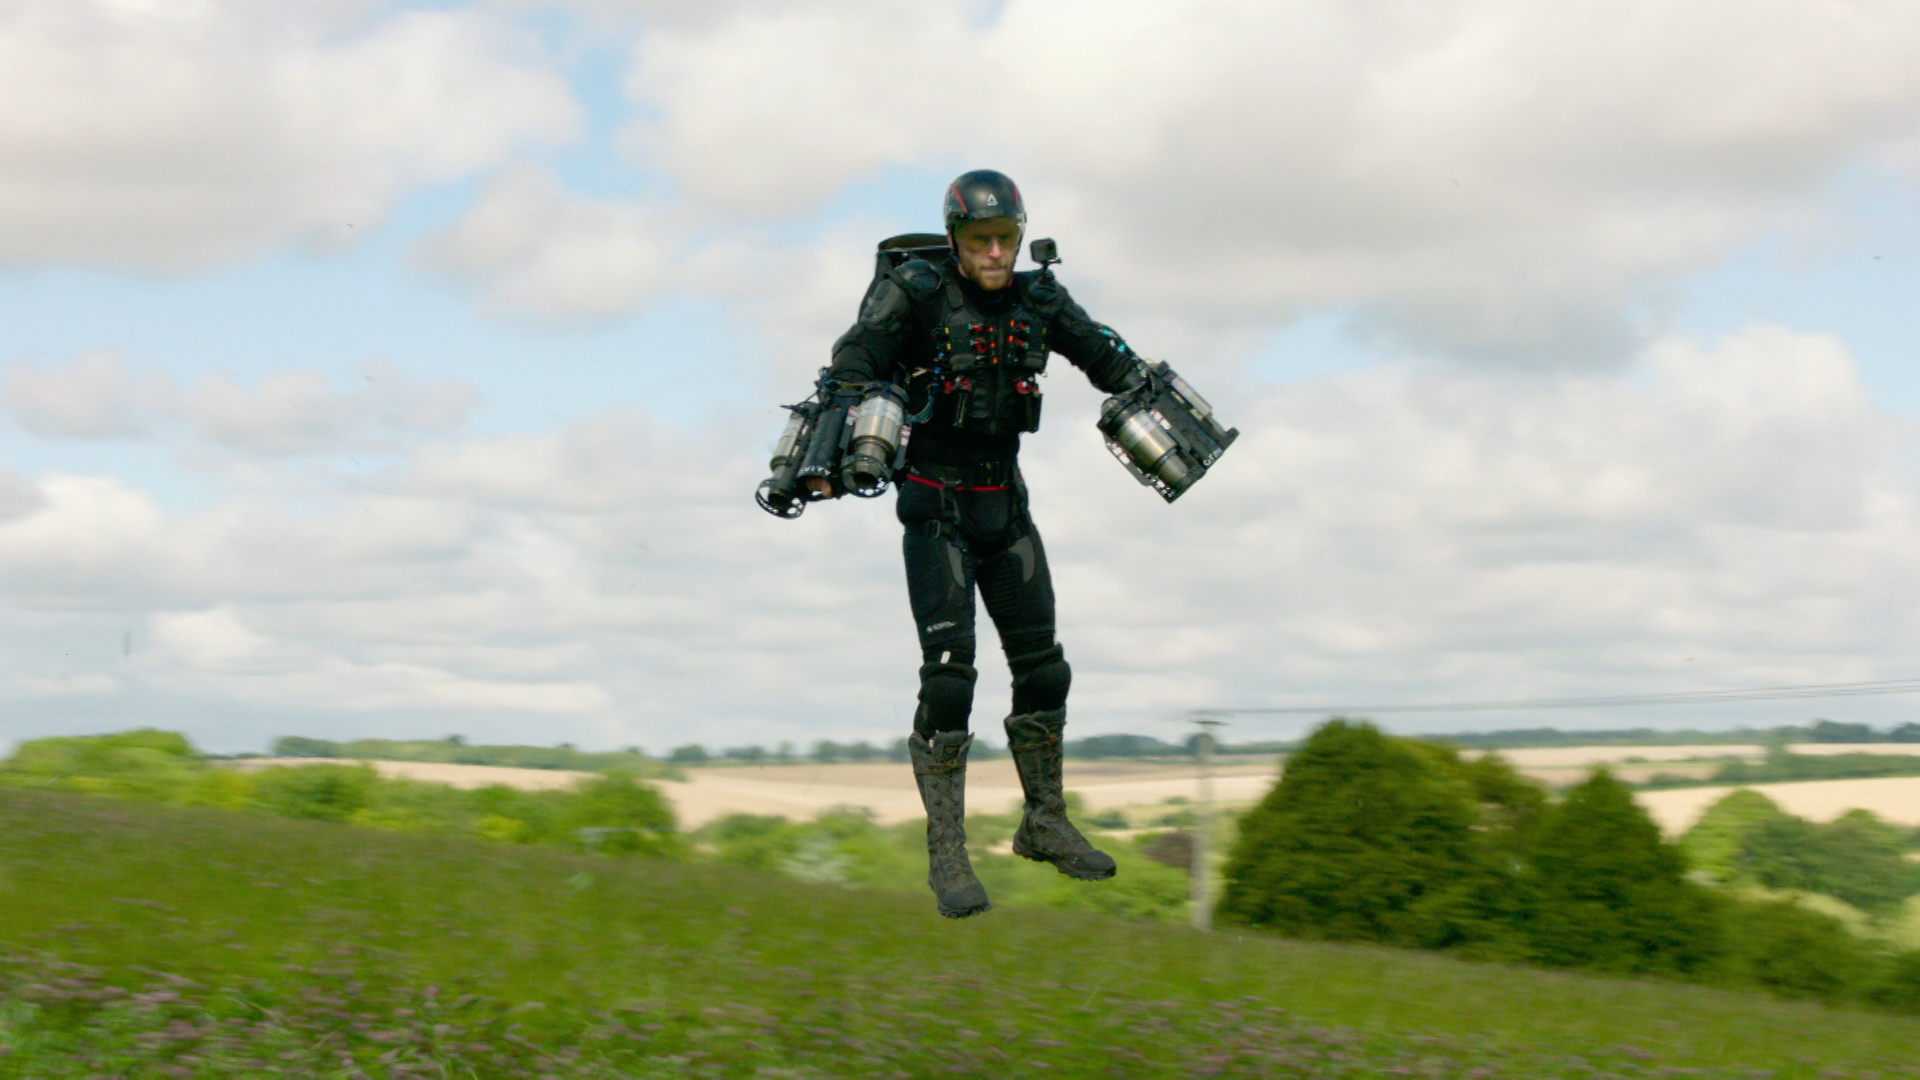 CBBC Beyond Bionic - man flying with jetpack